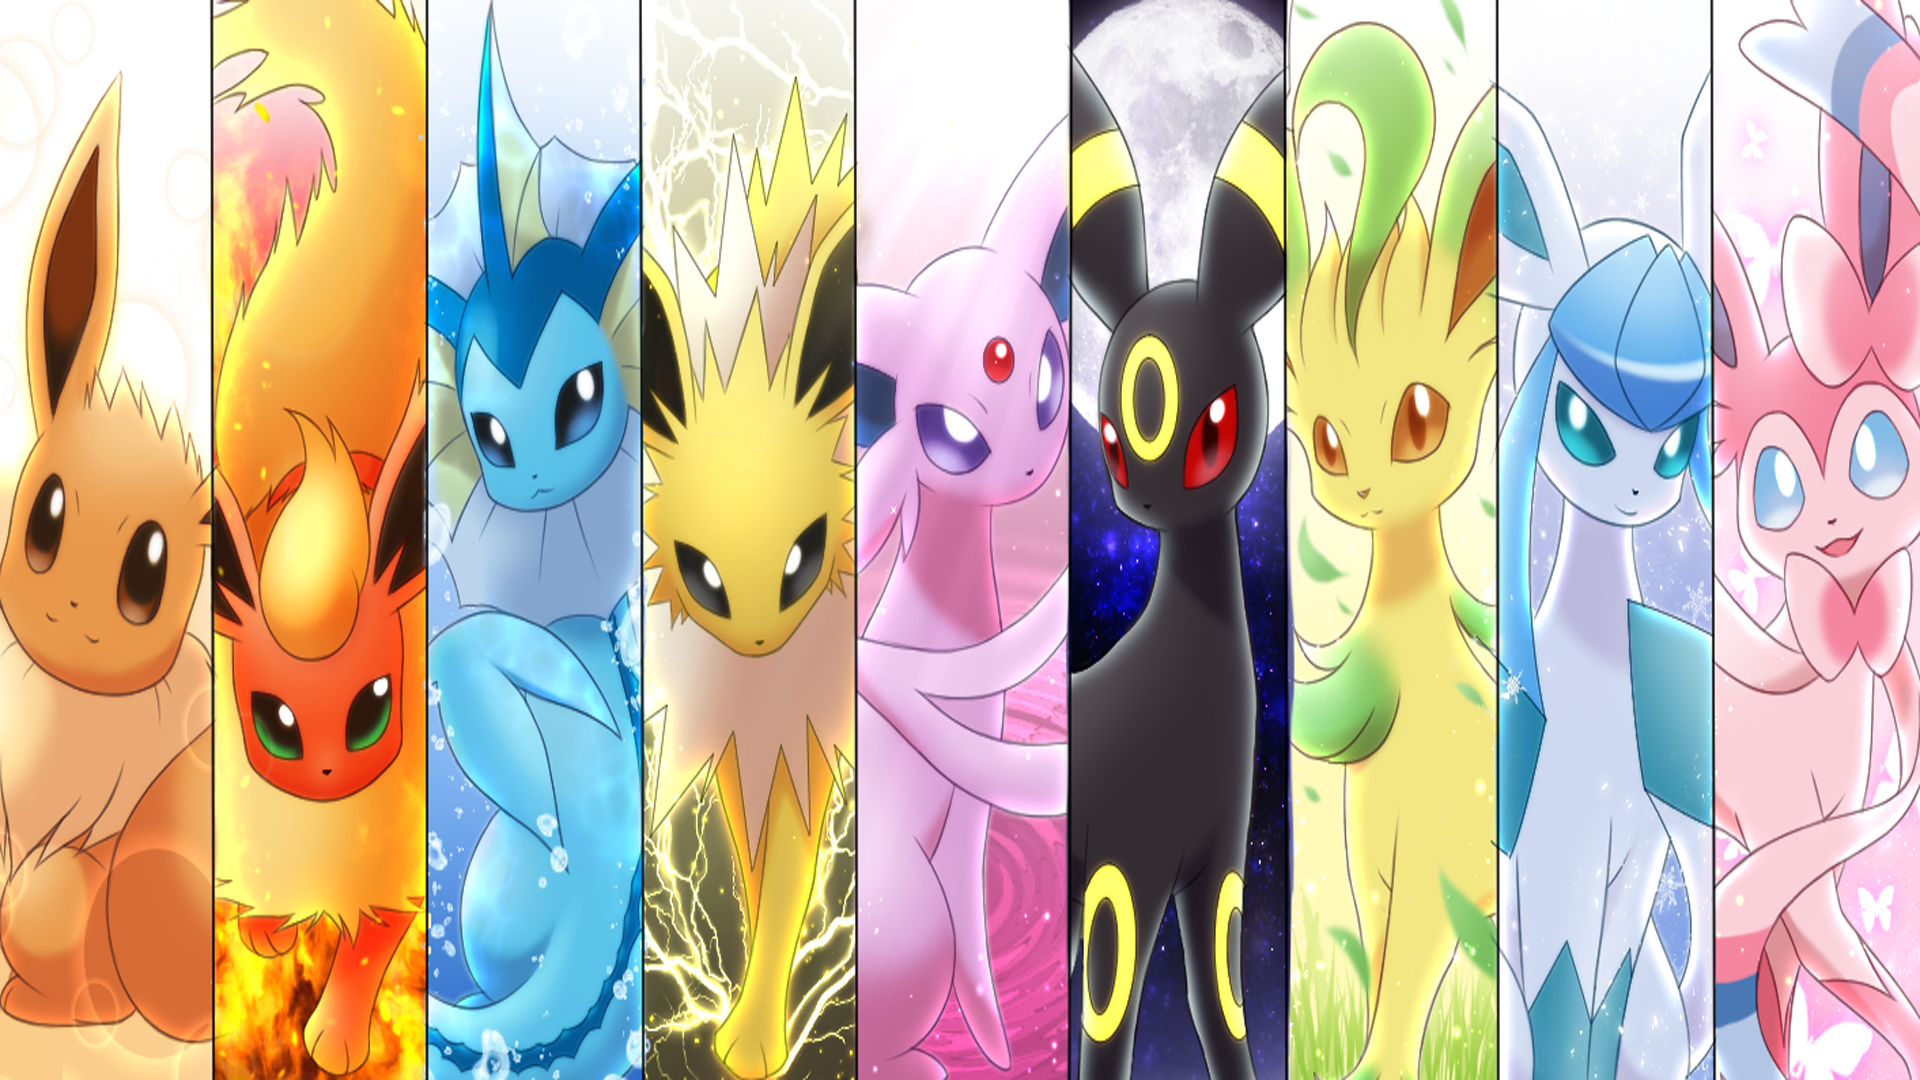 Pokemon Eeveelution Wallpaper Side By Side Download Free Hd Wallpapers